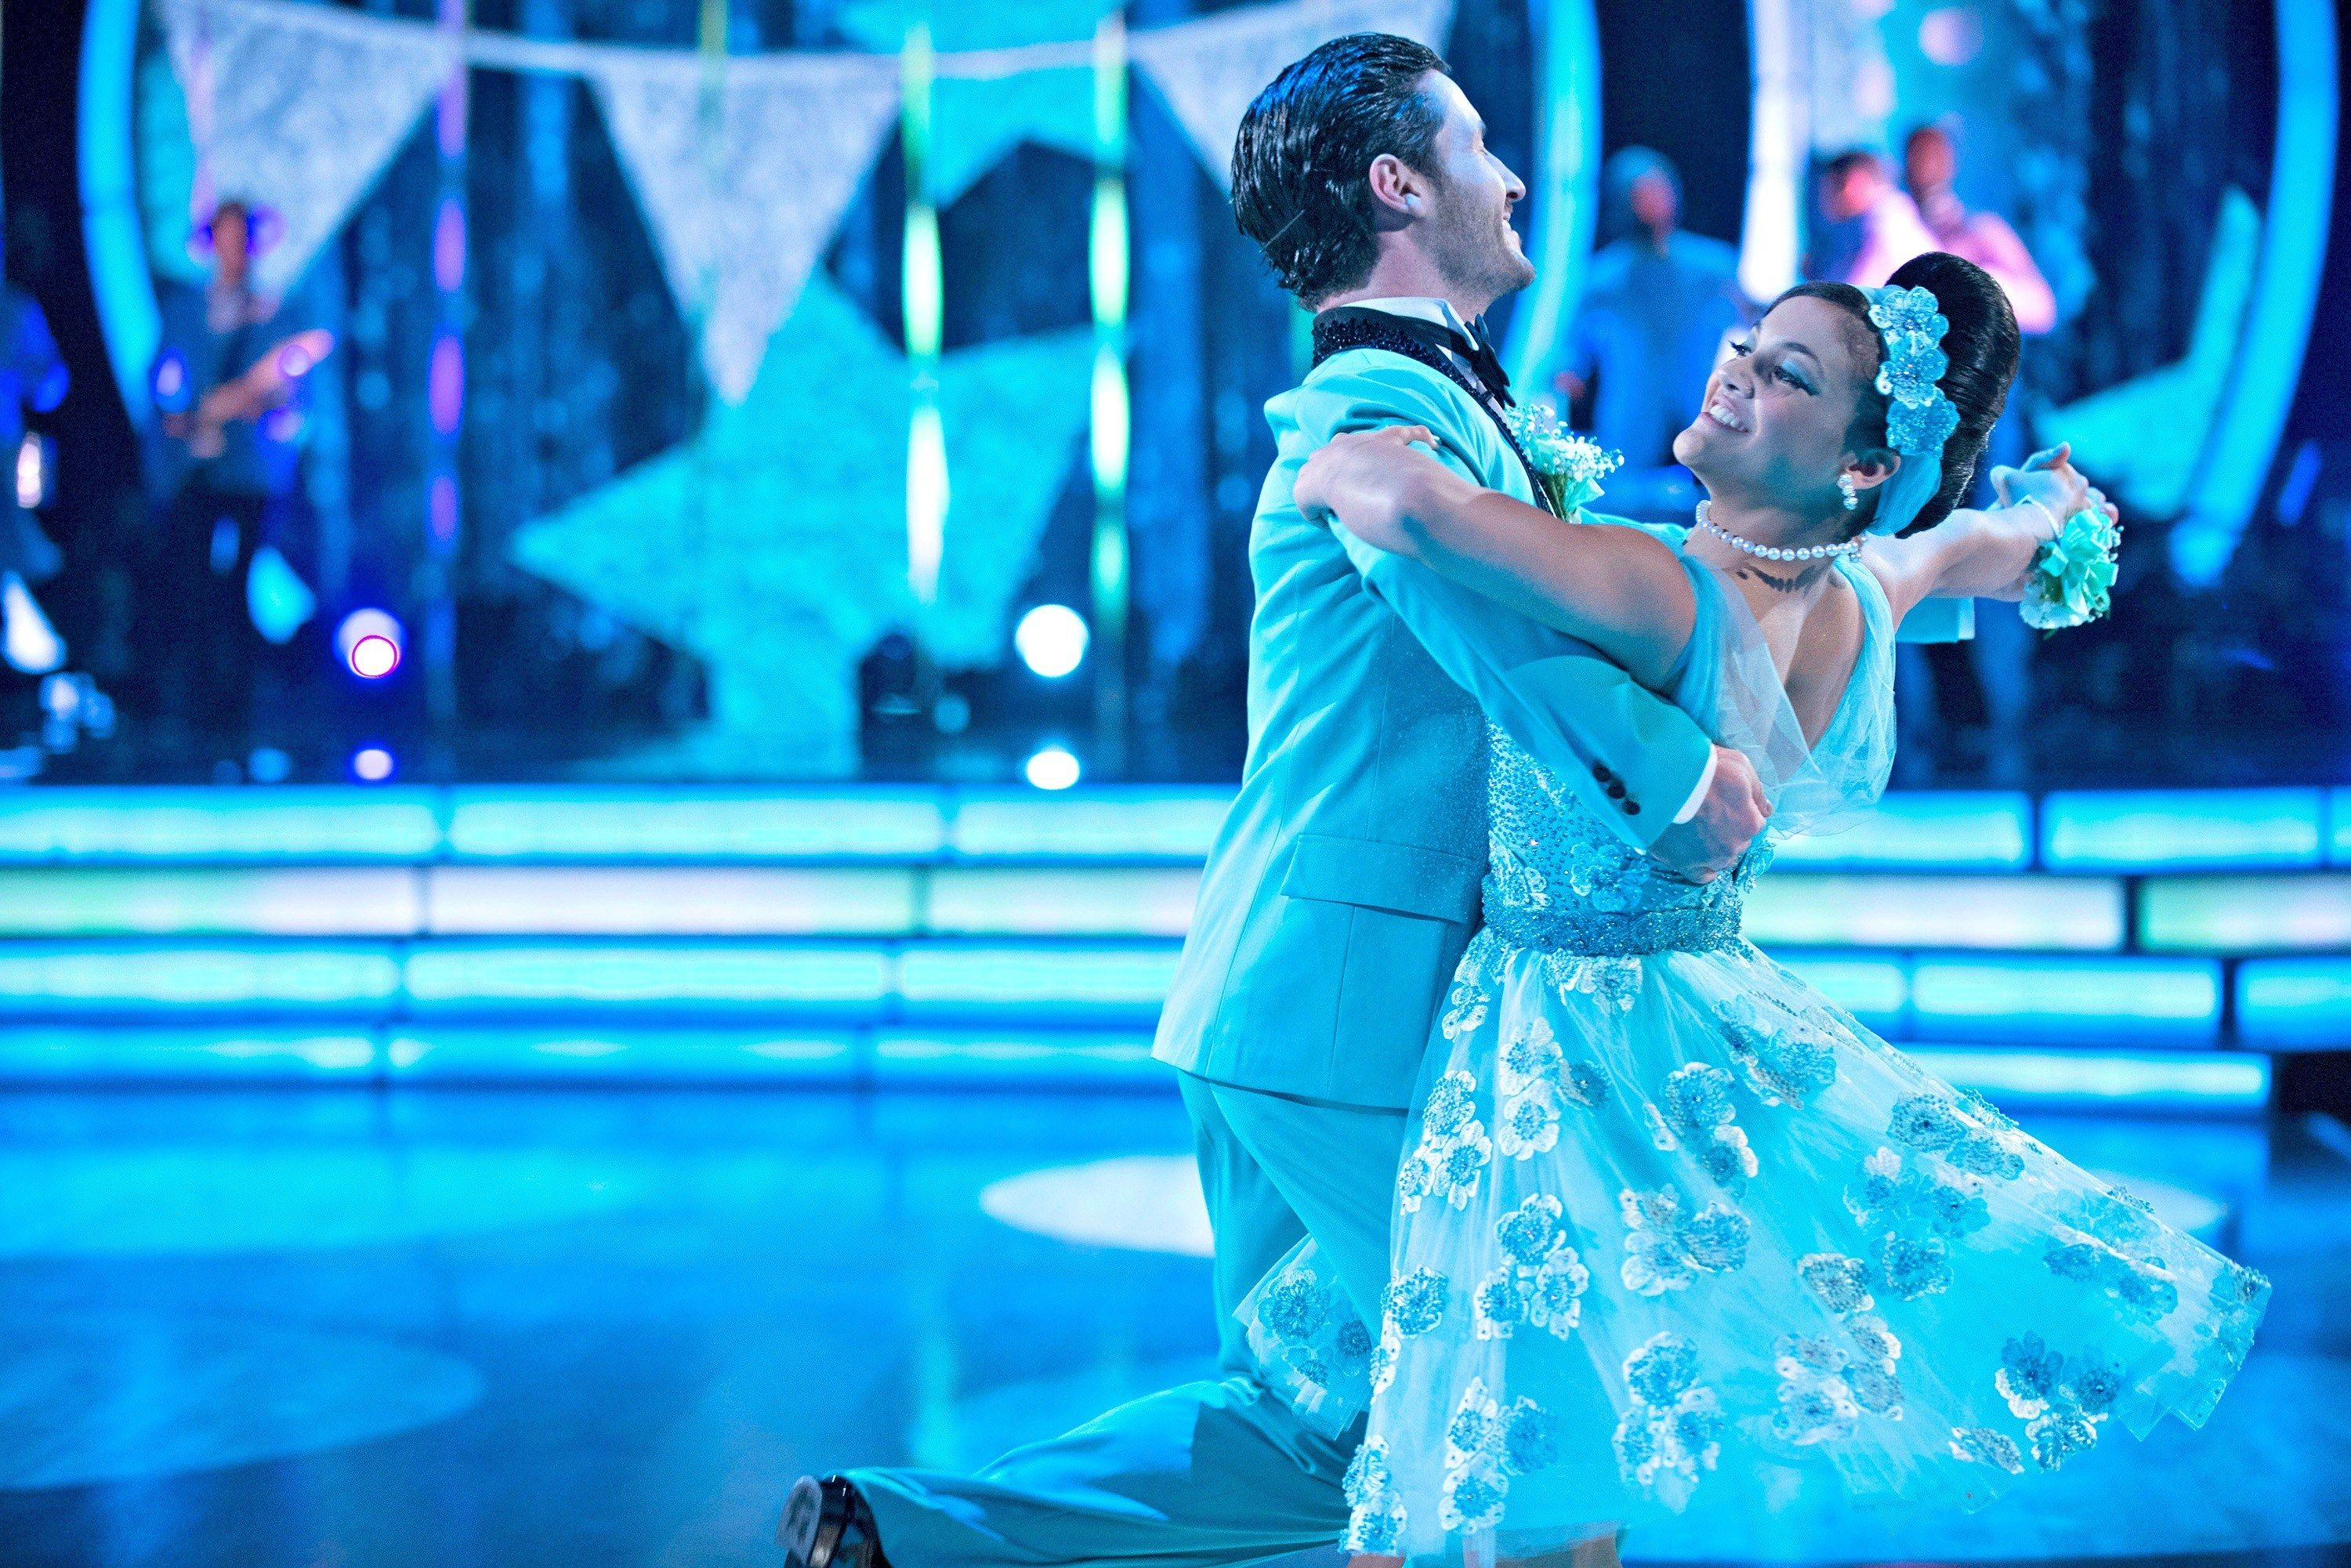 Val Chmerkovskiy Couldn T Stop Crying Over His Dance With Laurie Hernandez On Dancing With The Stars Val Chmerkovskiy Dancing With The Stars Laurie Hernandez